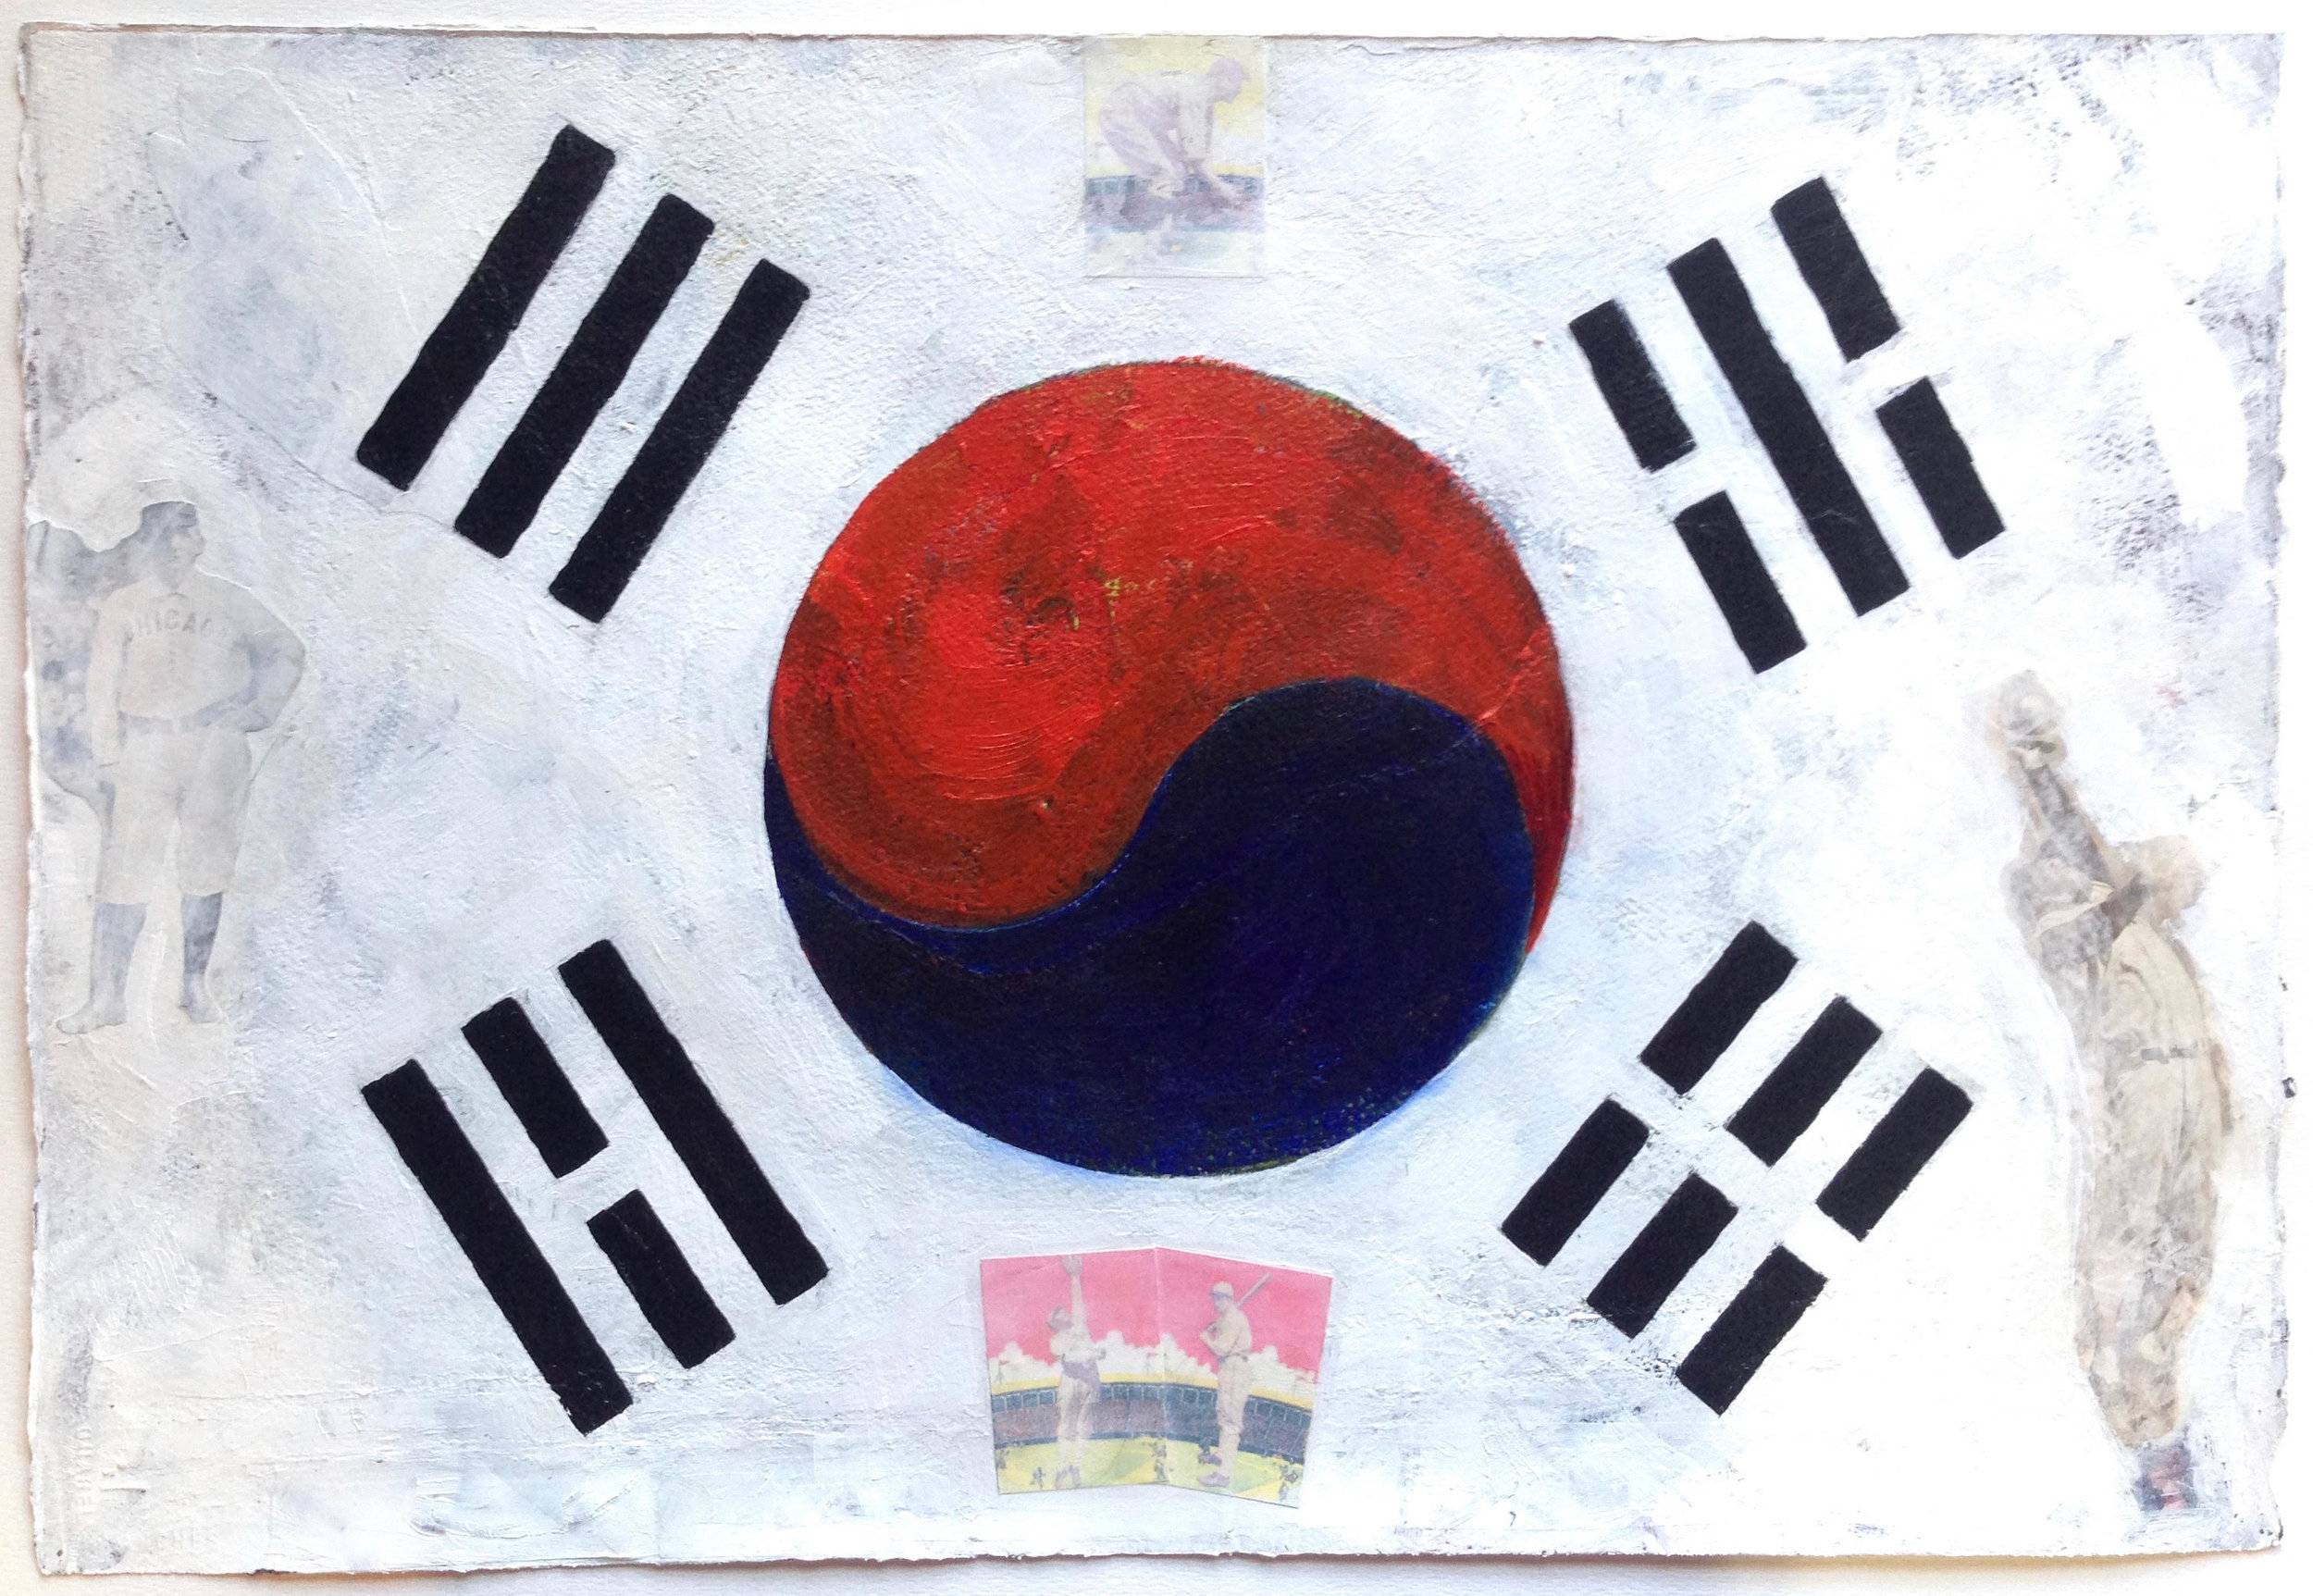 """Taijitu (South Korea)"" by Patrick Donley, 20x26in, mixed media on arches (2016)"